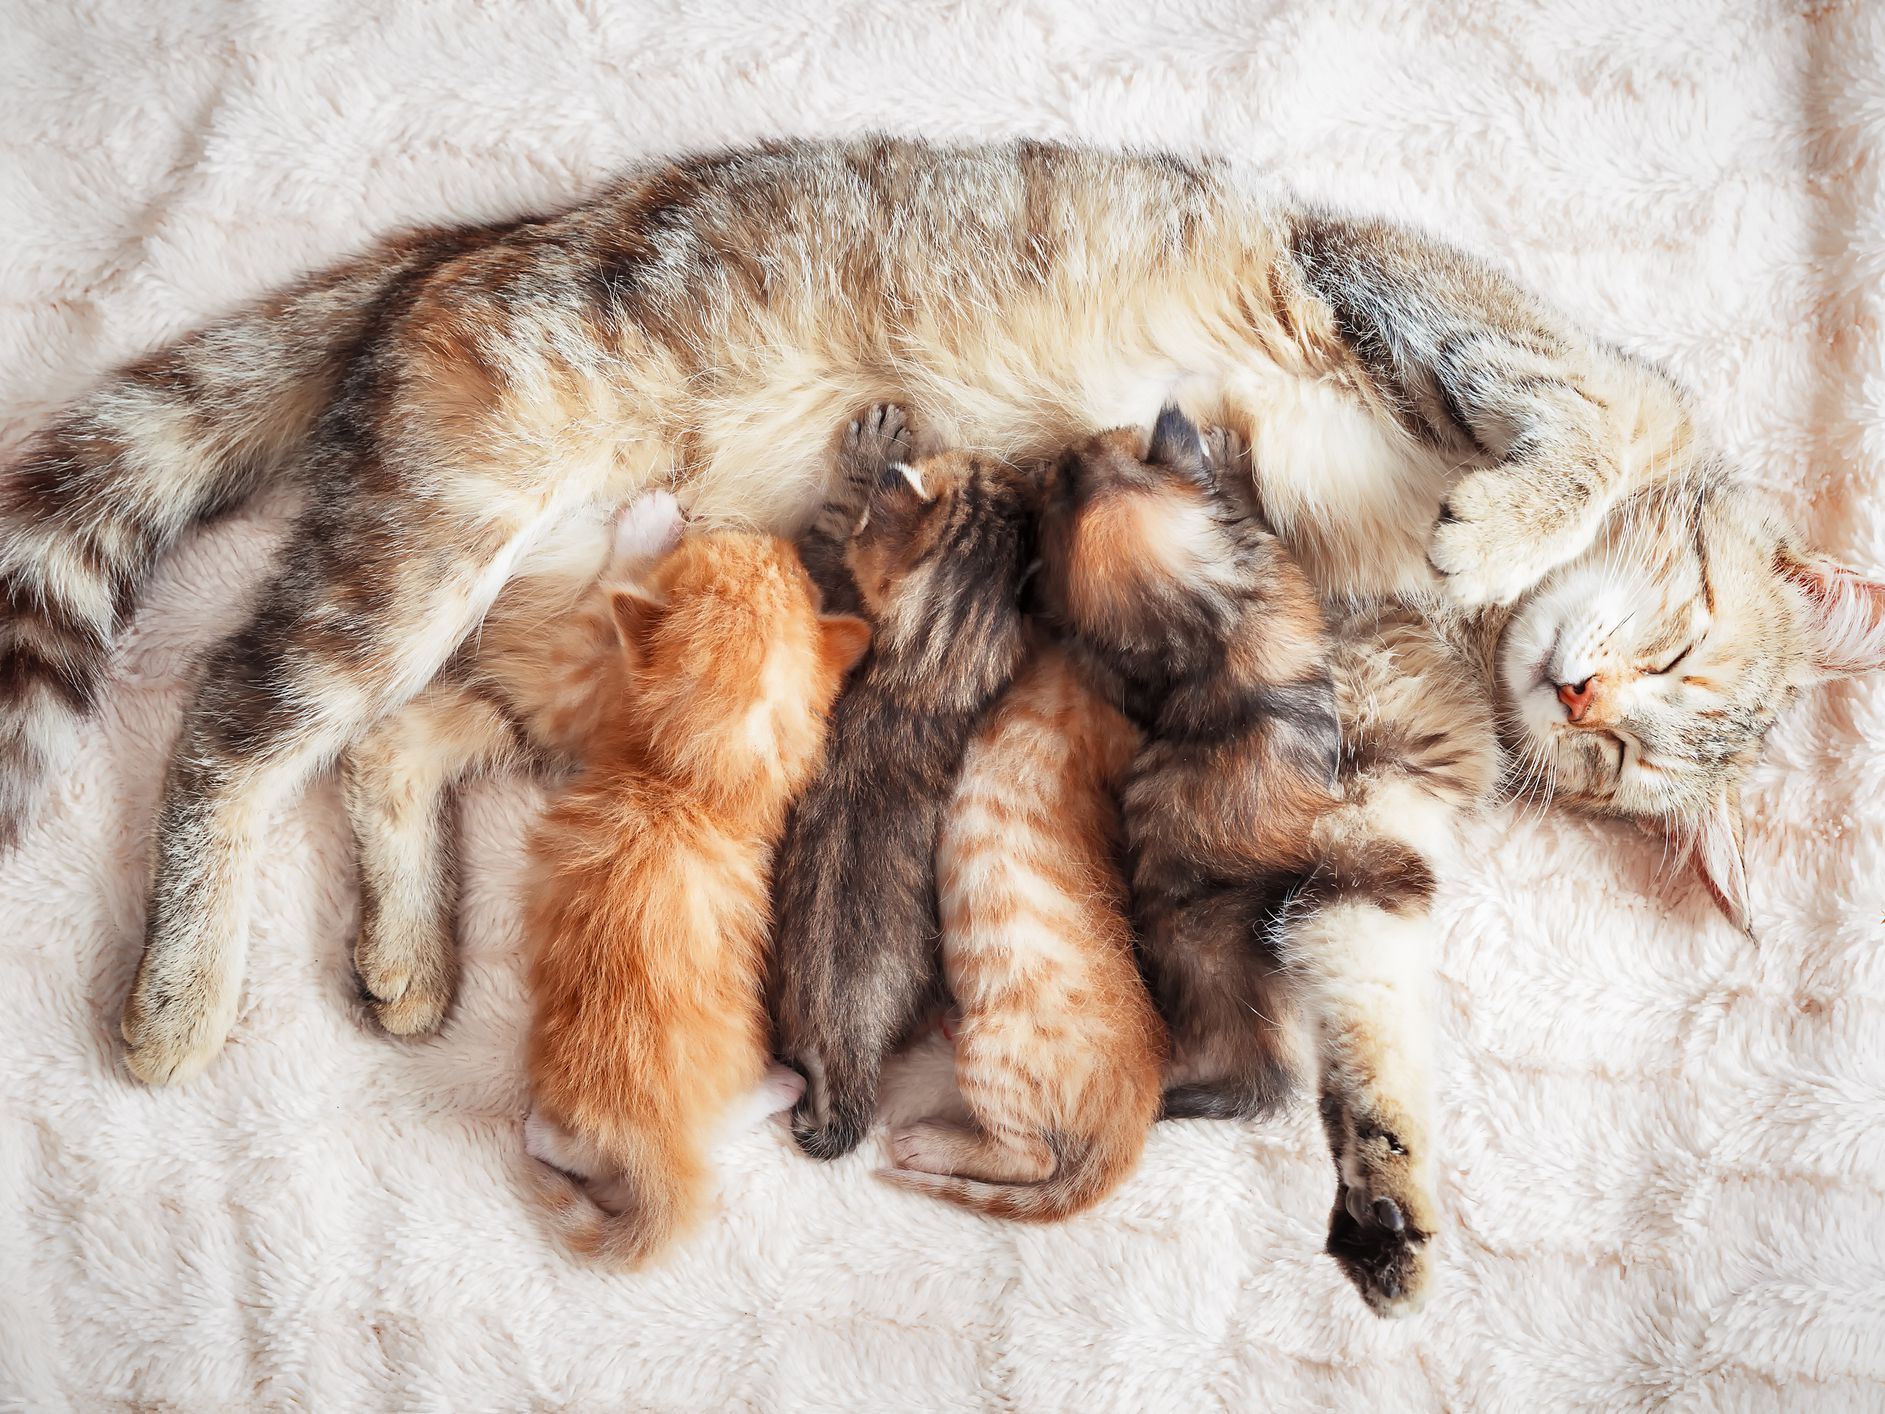 5 Ways to Know if Your Kitten Was Taken Away From Its Mother Too Soon